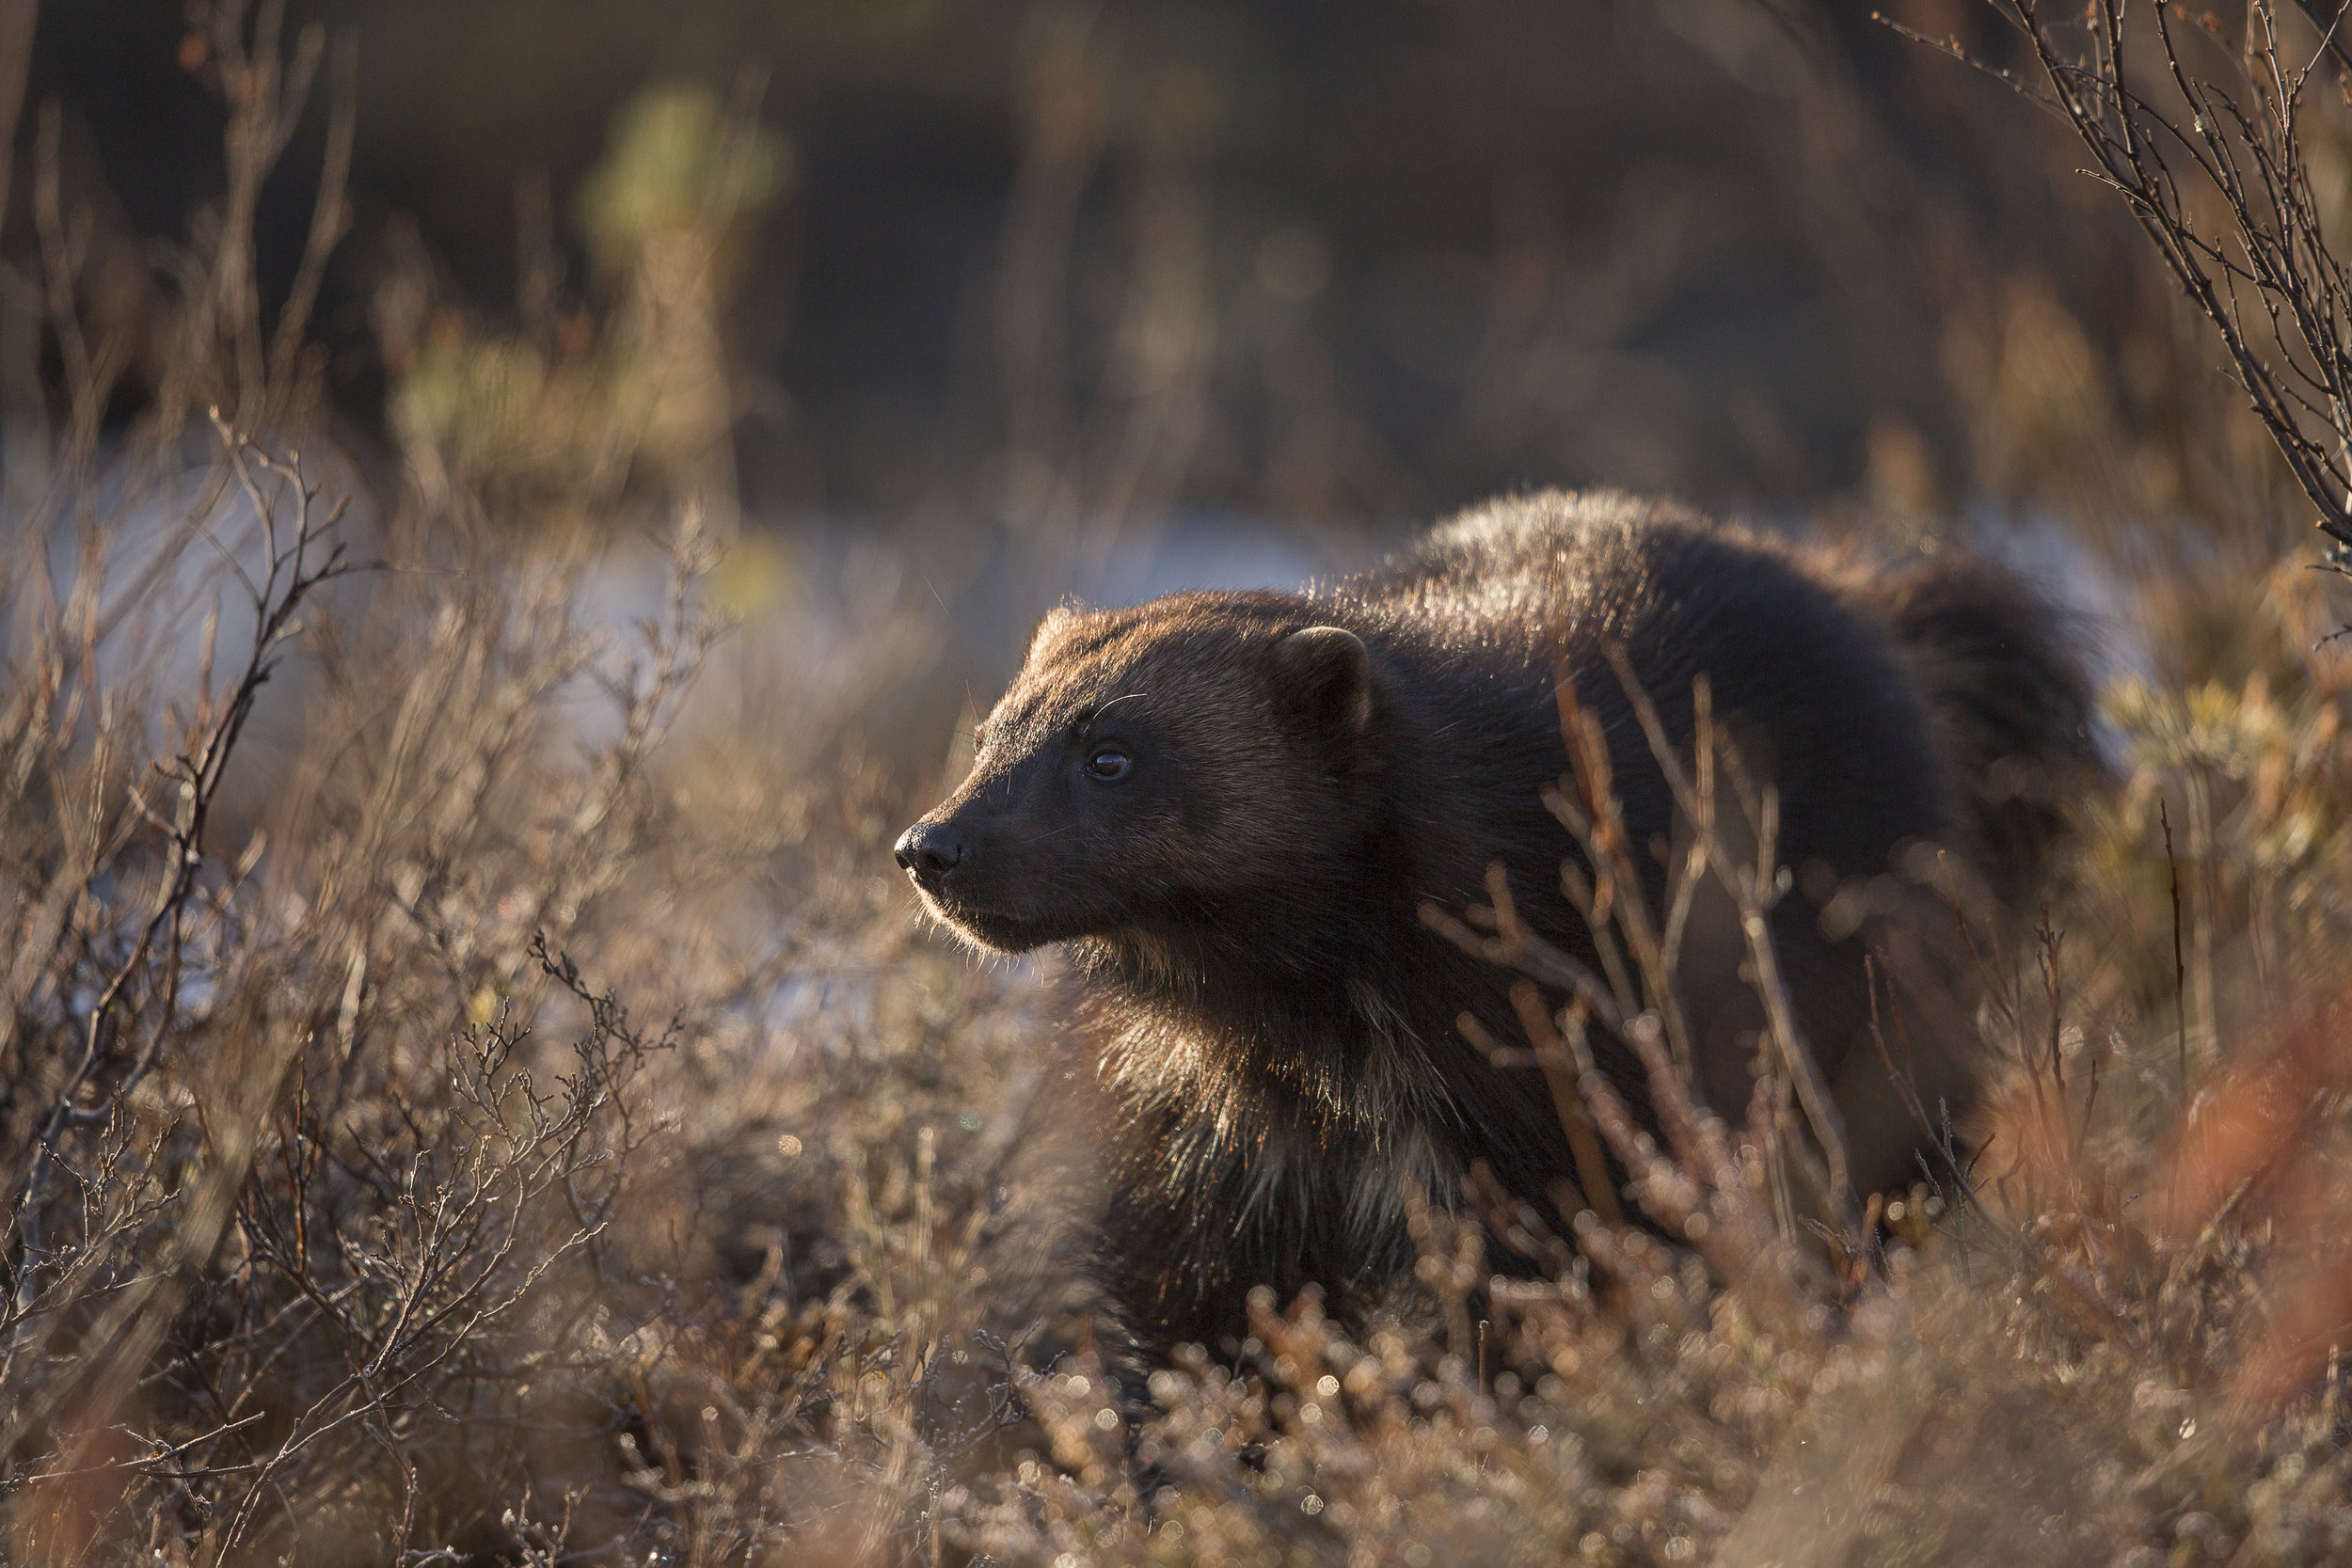 A close encounter with a Wolverine at sunrise near the northern lake.